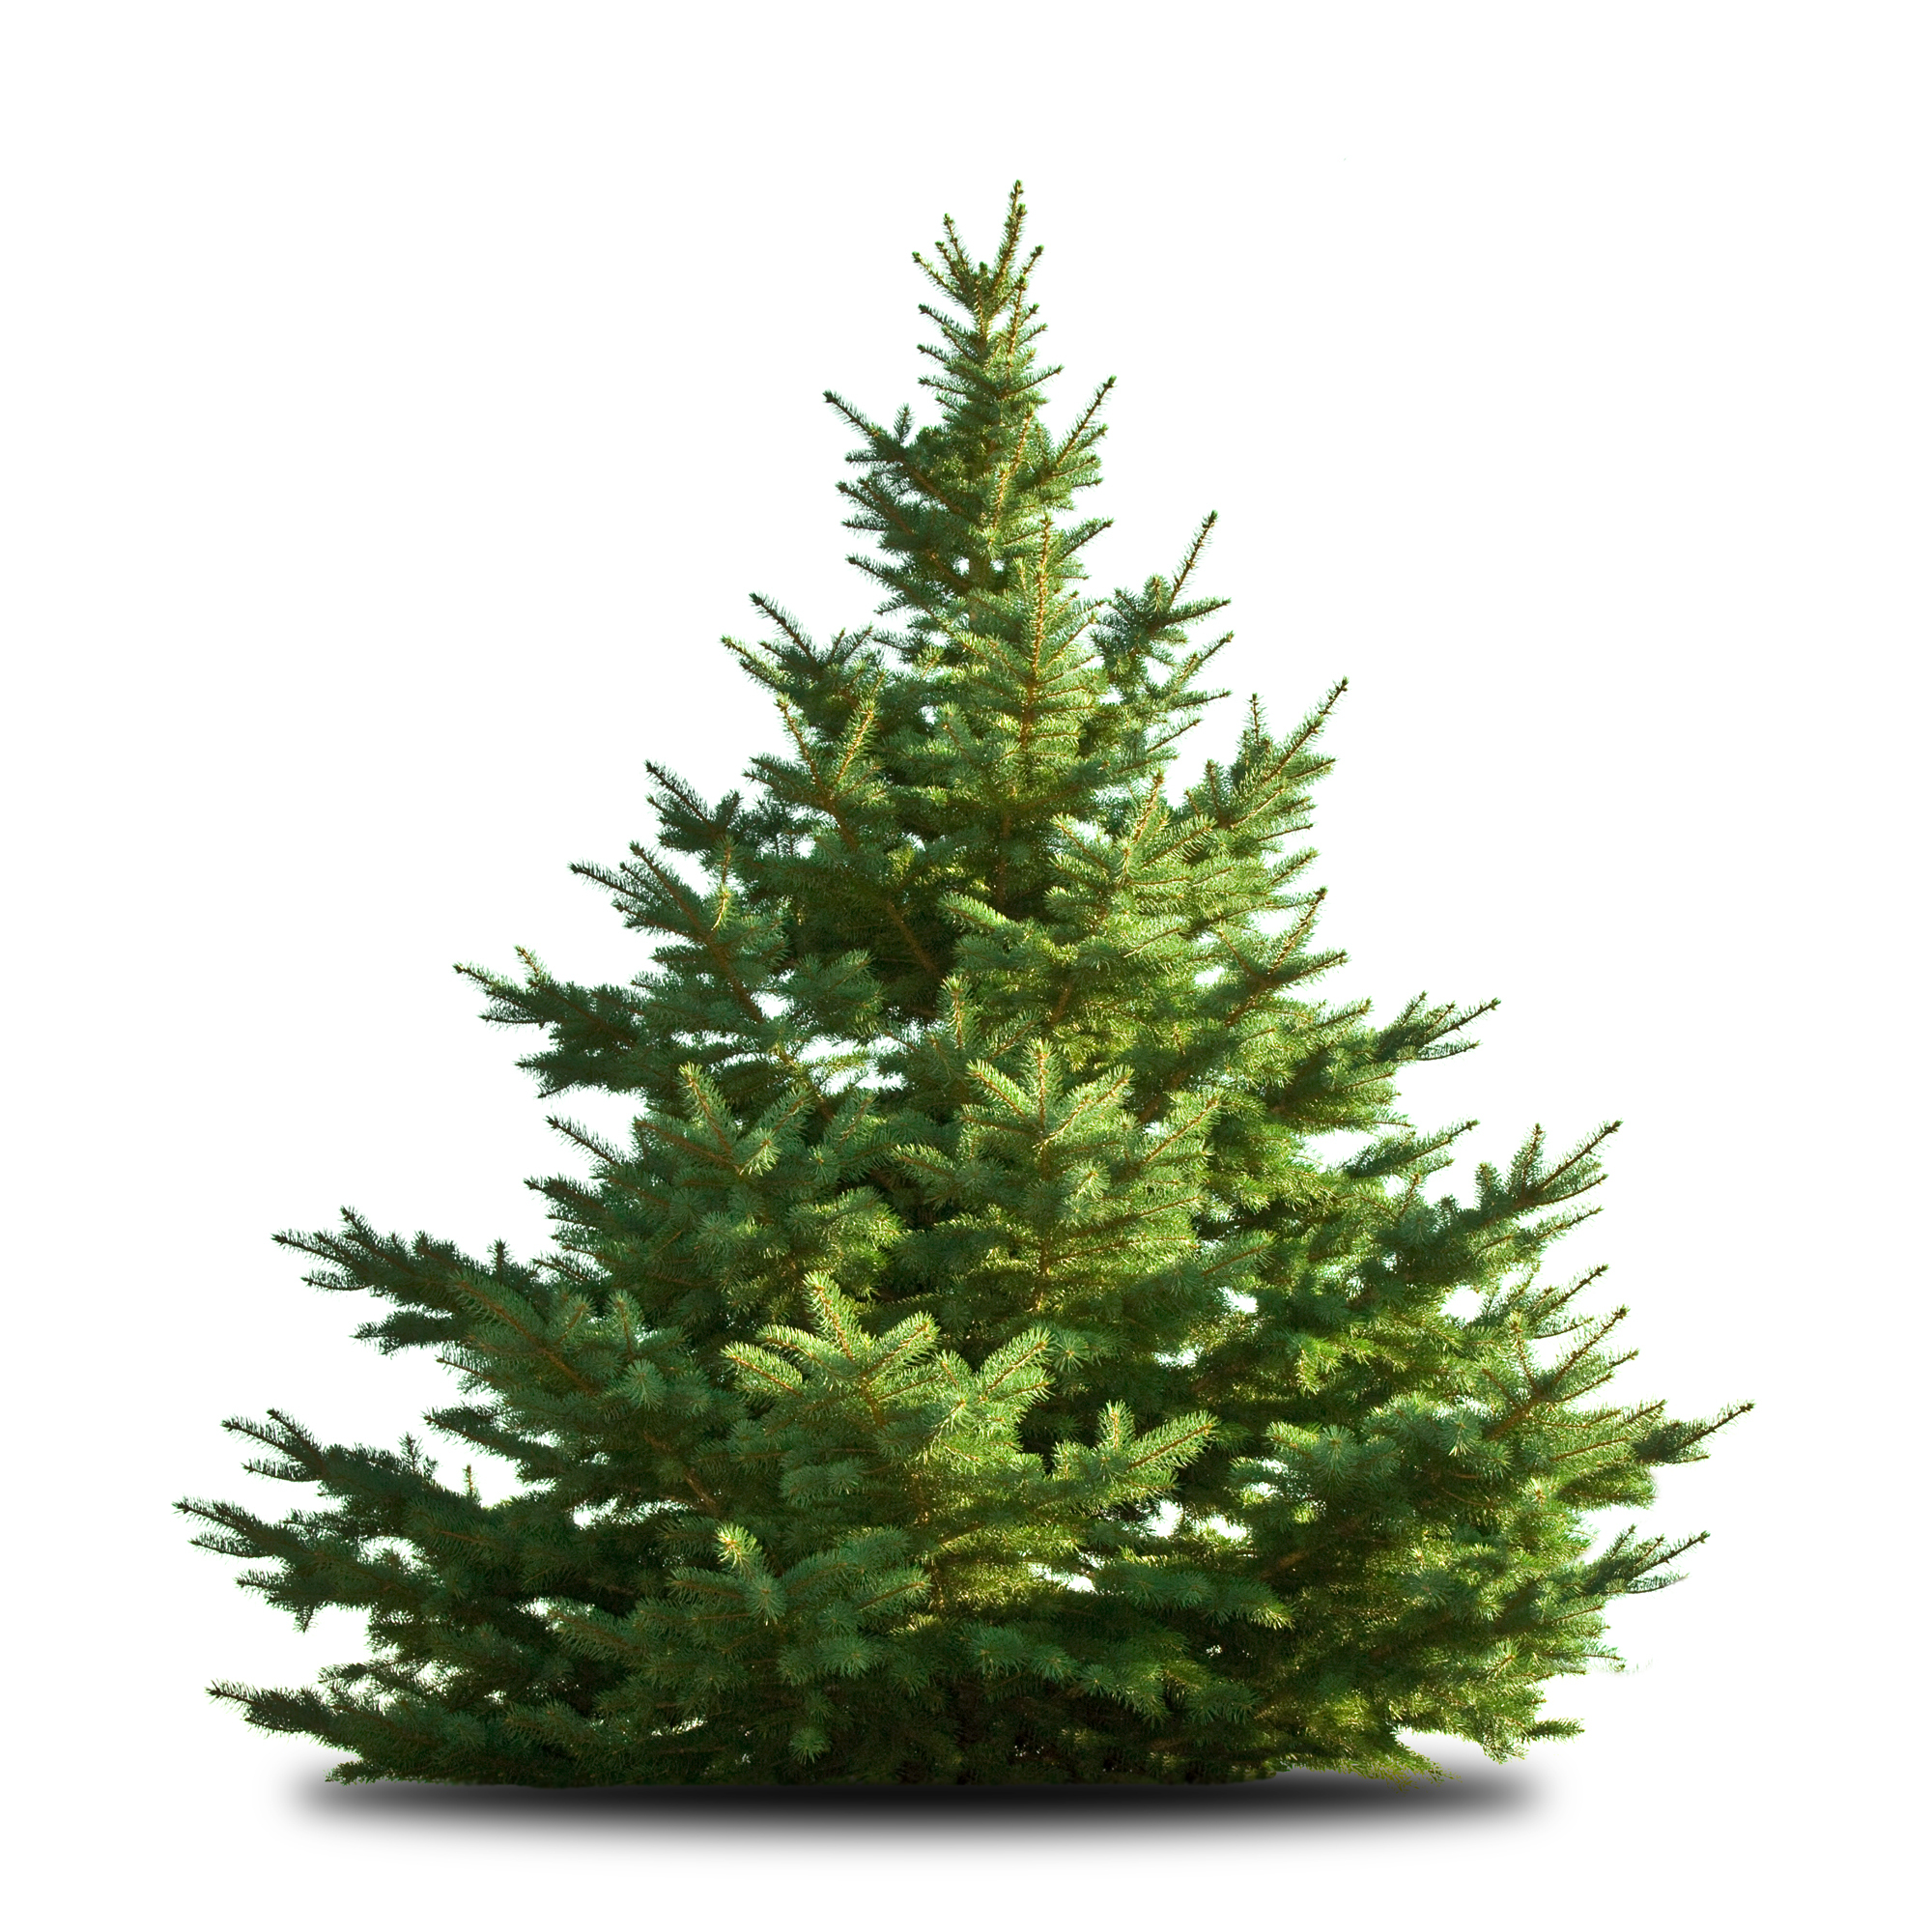 City Offers Christmas Tree Recycling